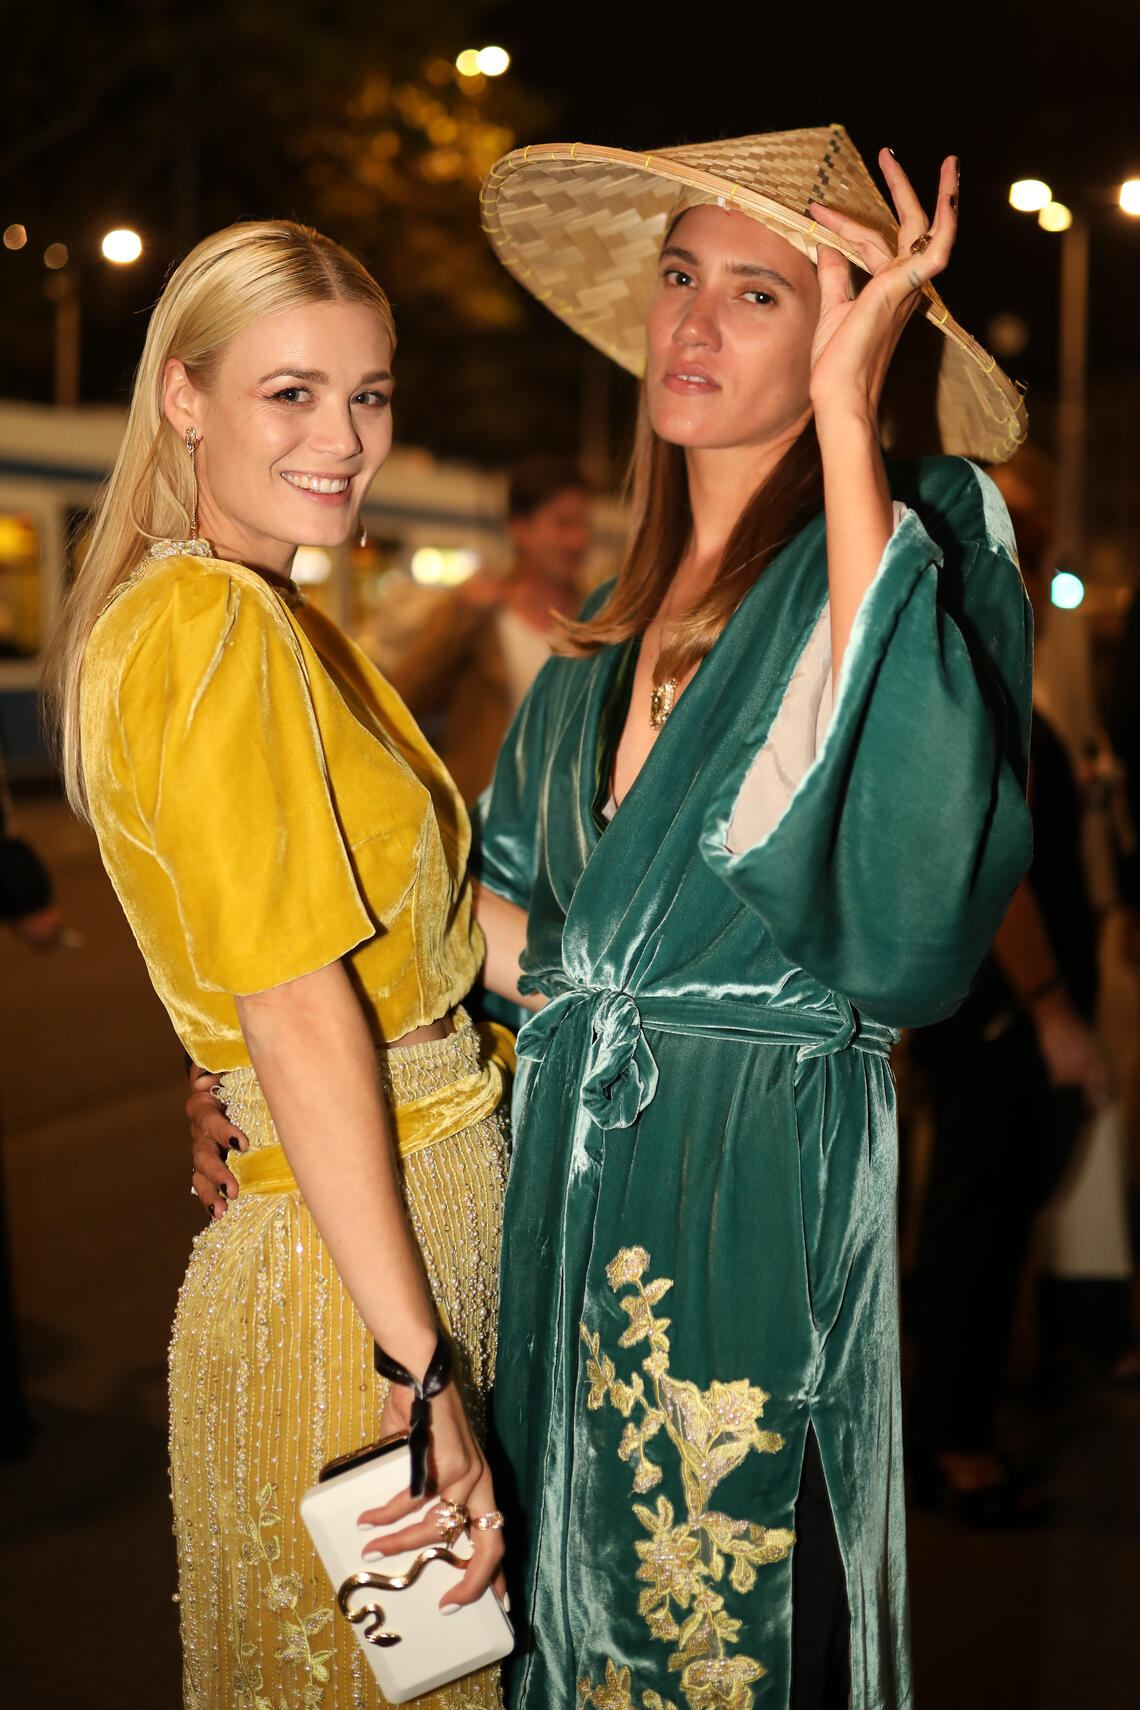 ZURICH, SWITZERLAND - SEPTEMBER 26: Dominique Rinderknecht and Tamy Glauser attend the opening party during the 15th Zurich Film Festival at Globus Bellevue on September 26, 2019 in Zurich, Switzerland. The Zurich Film Festival 2019 takes place from September 26 until October 6. (Photo by Ferda Demir/Getty Images for ZFF)